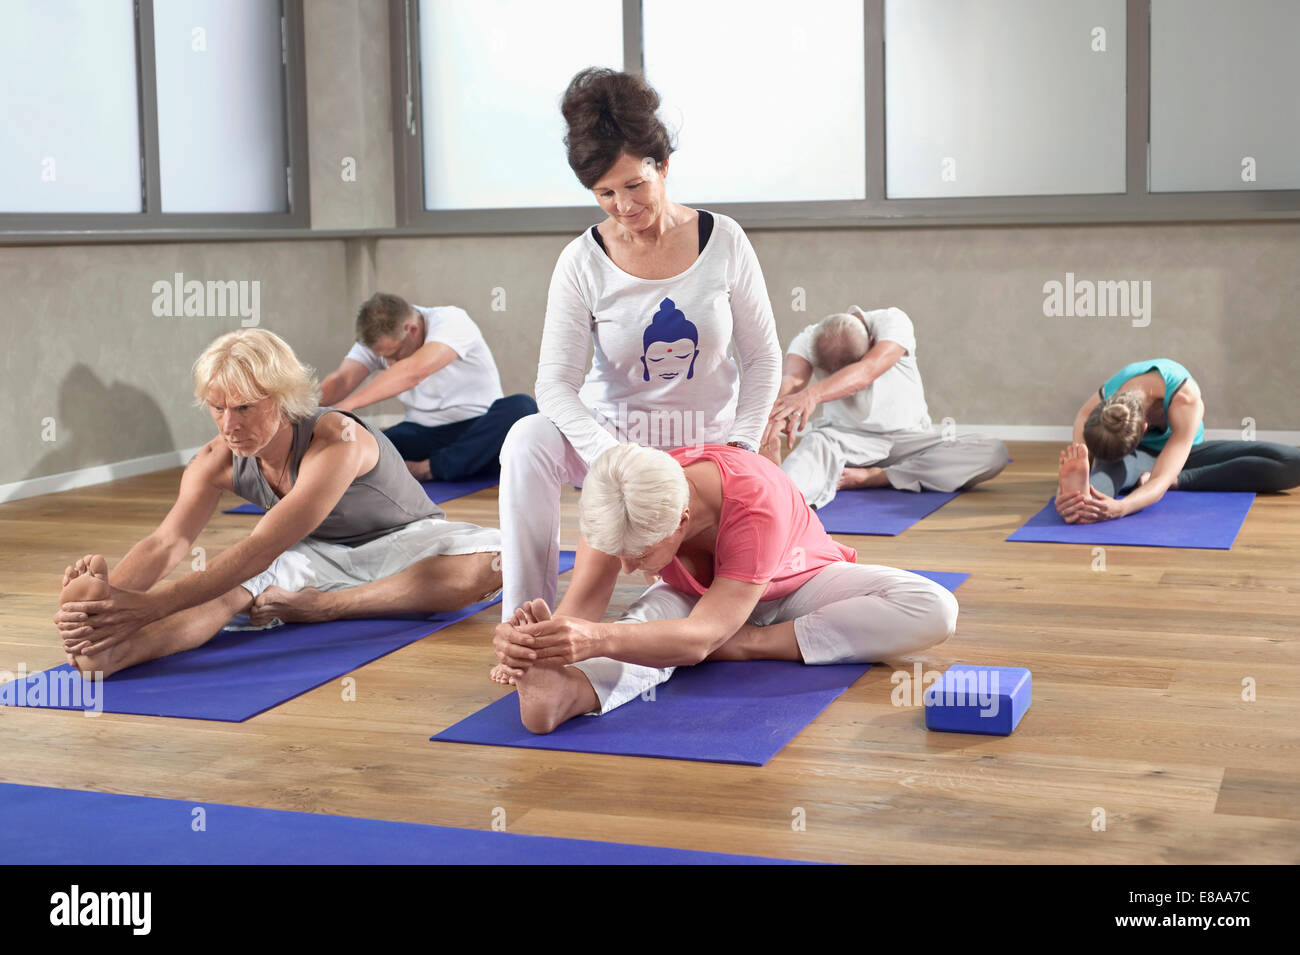 Woman Trainer Teaching Group Yoga Exercises